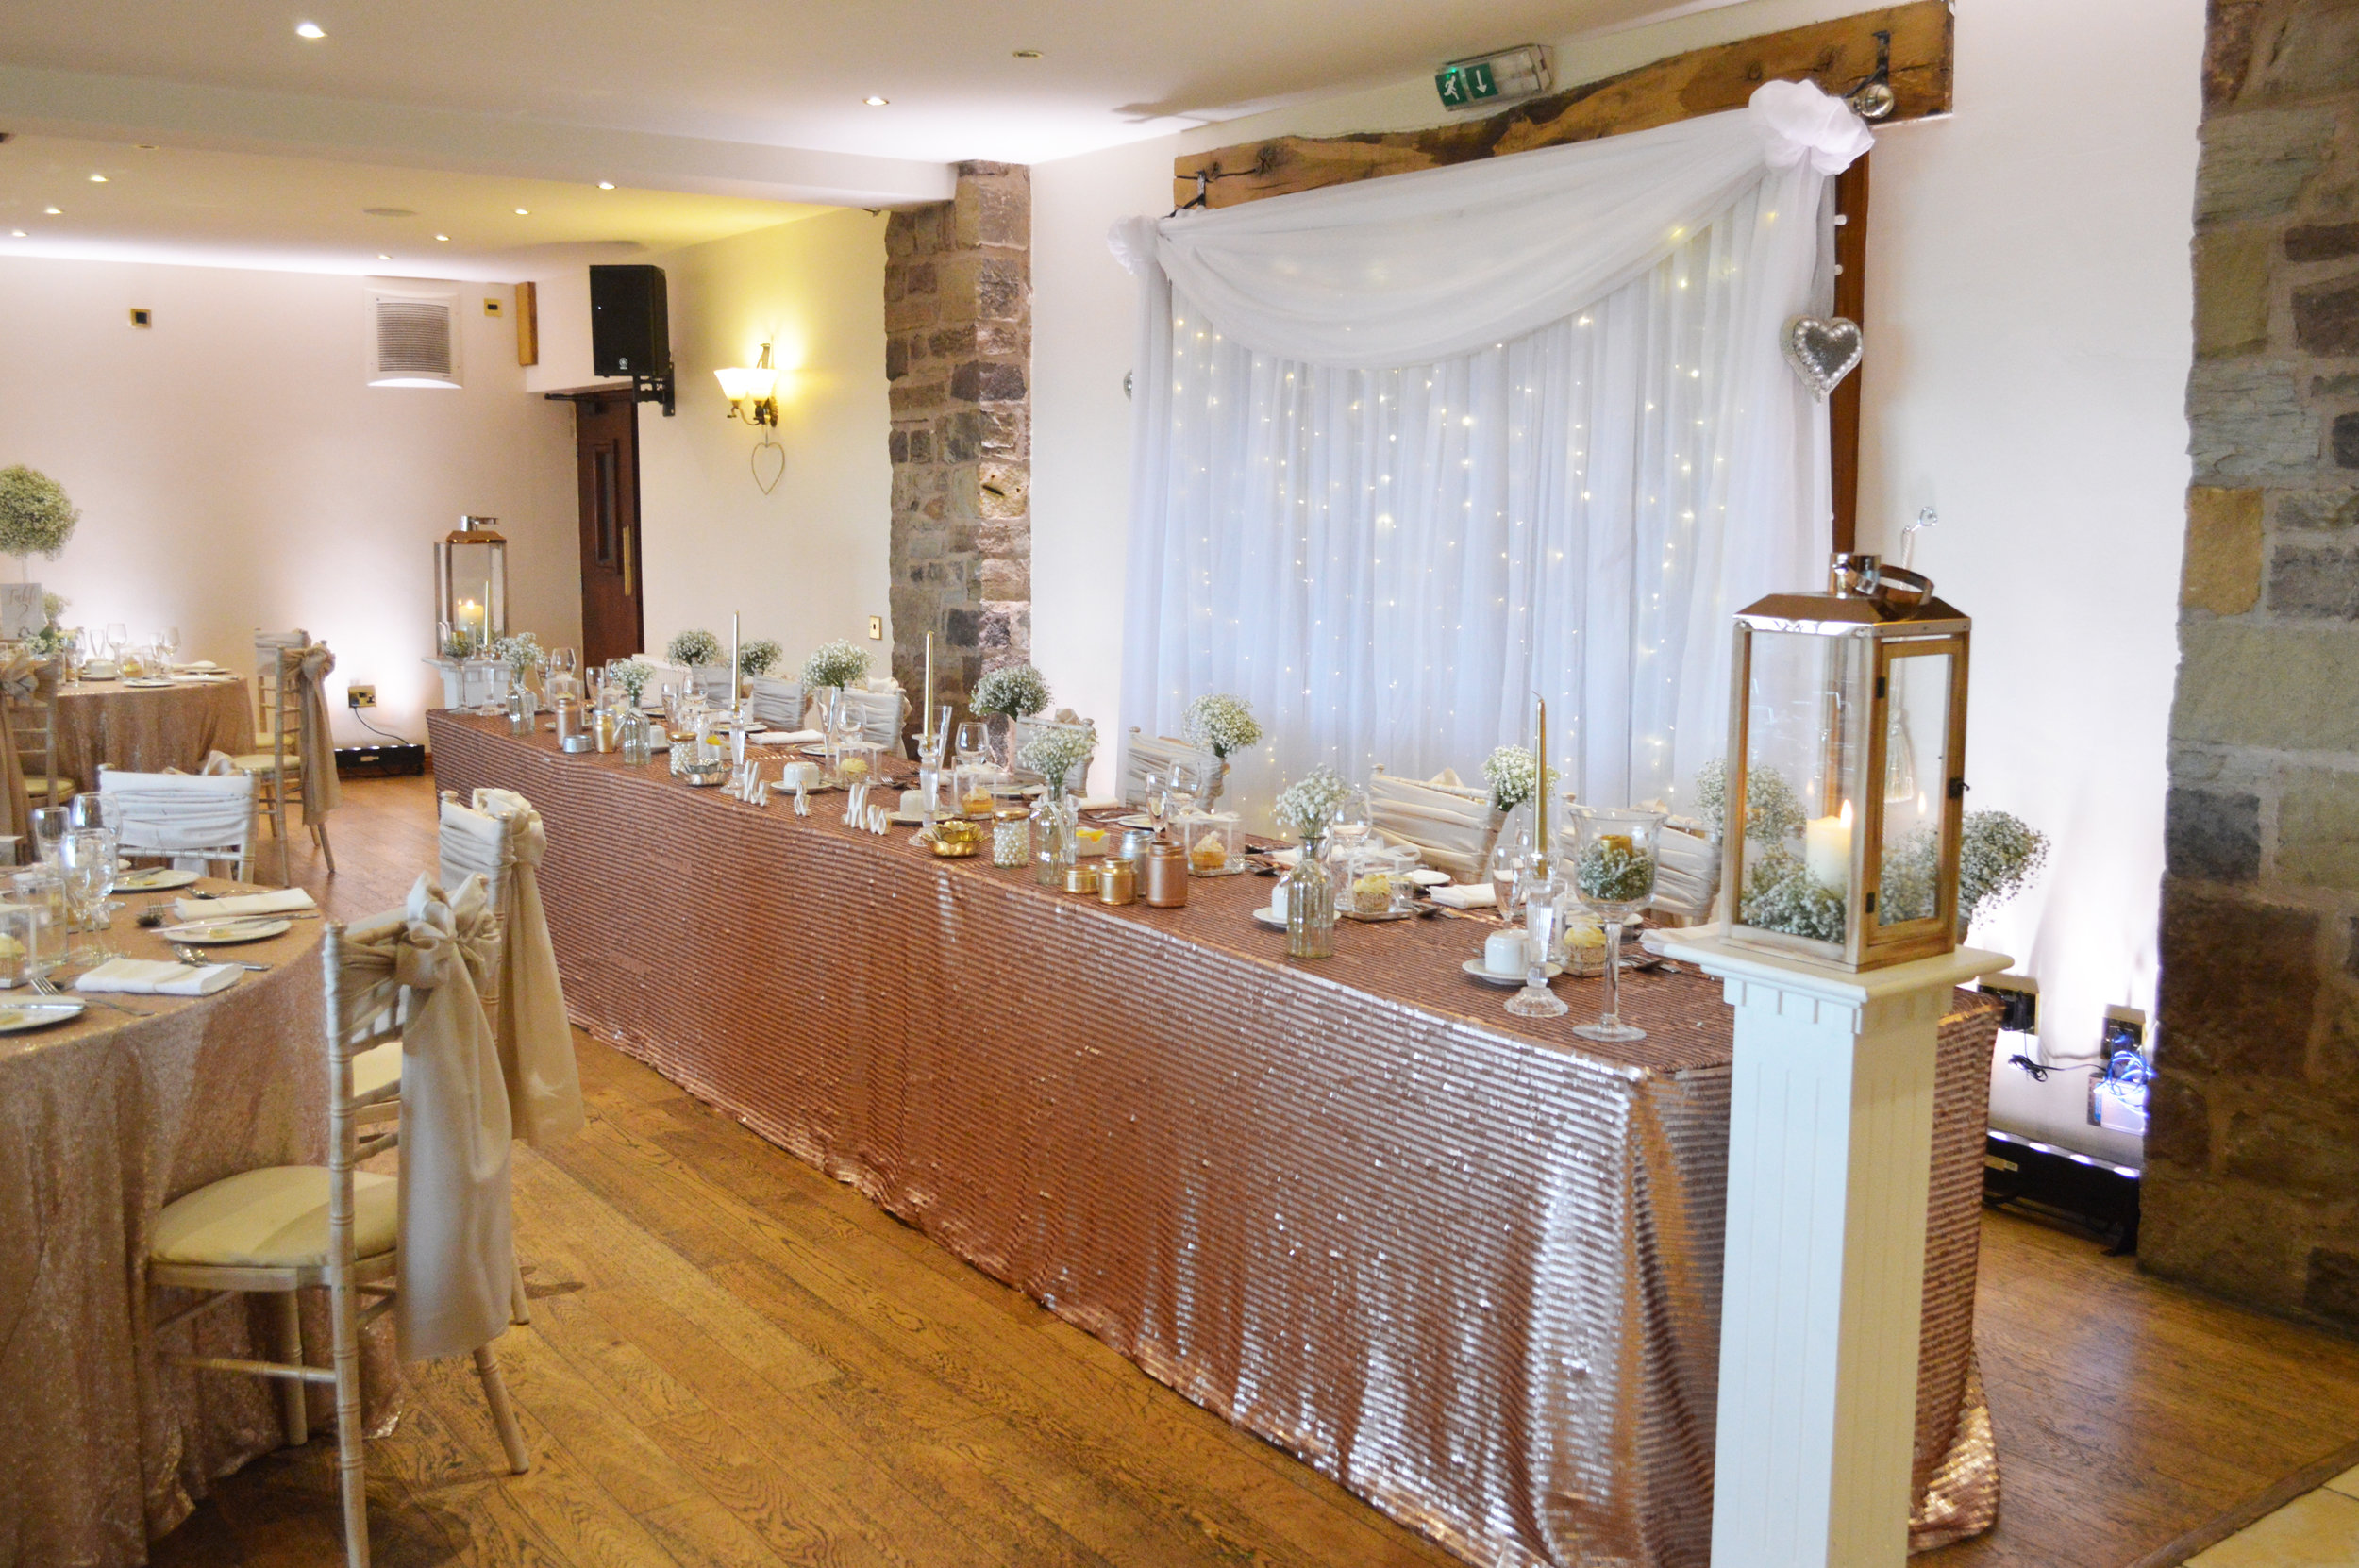 Sequin top table cloth